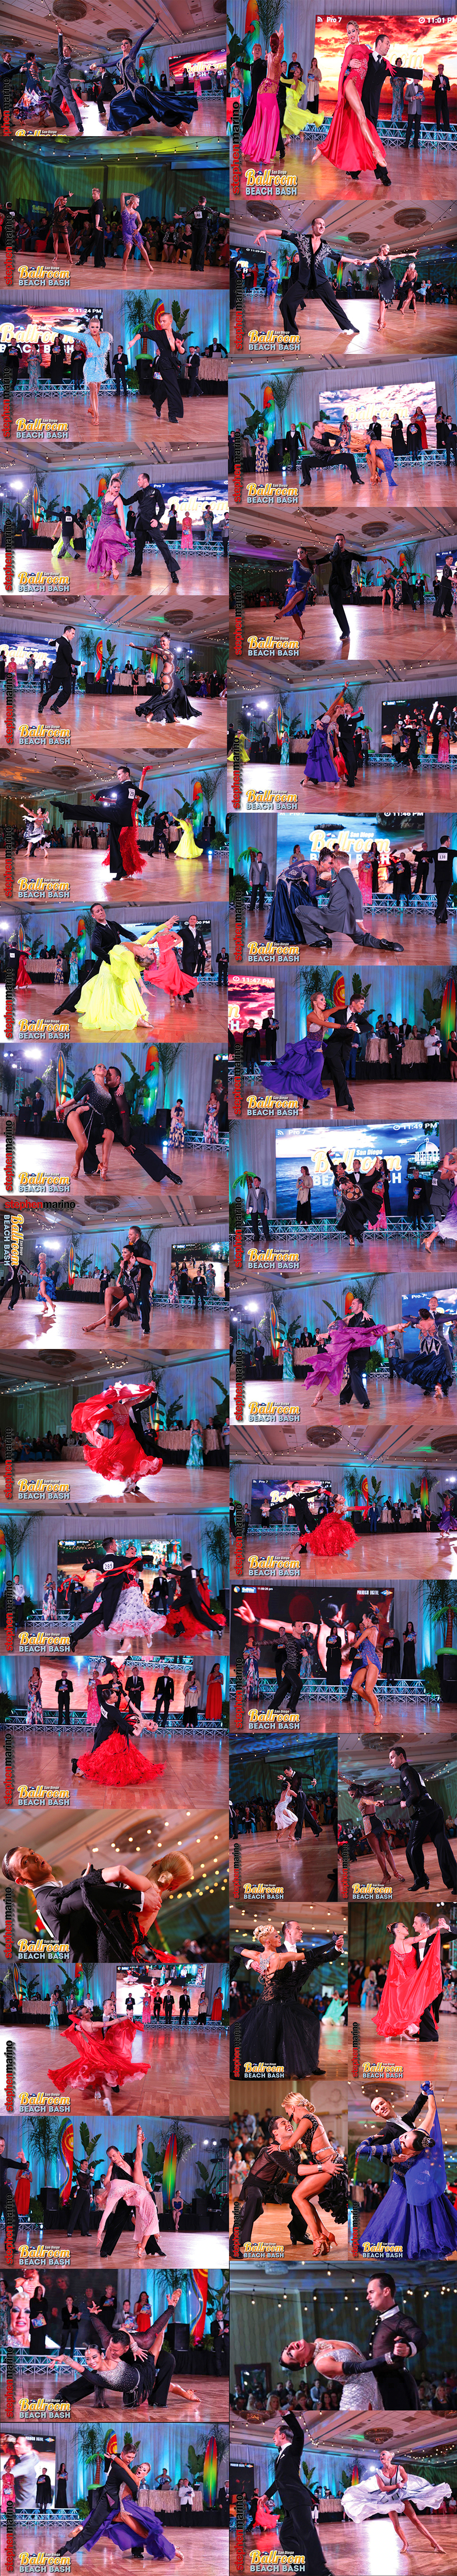 Dancing/2016/Pros/Pro-Events.jpg